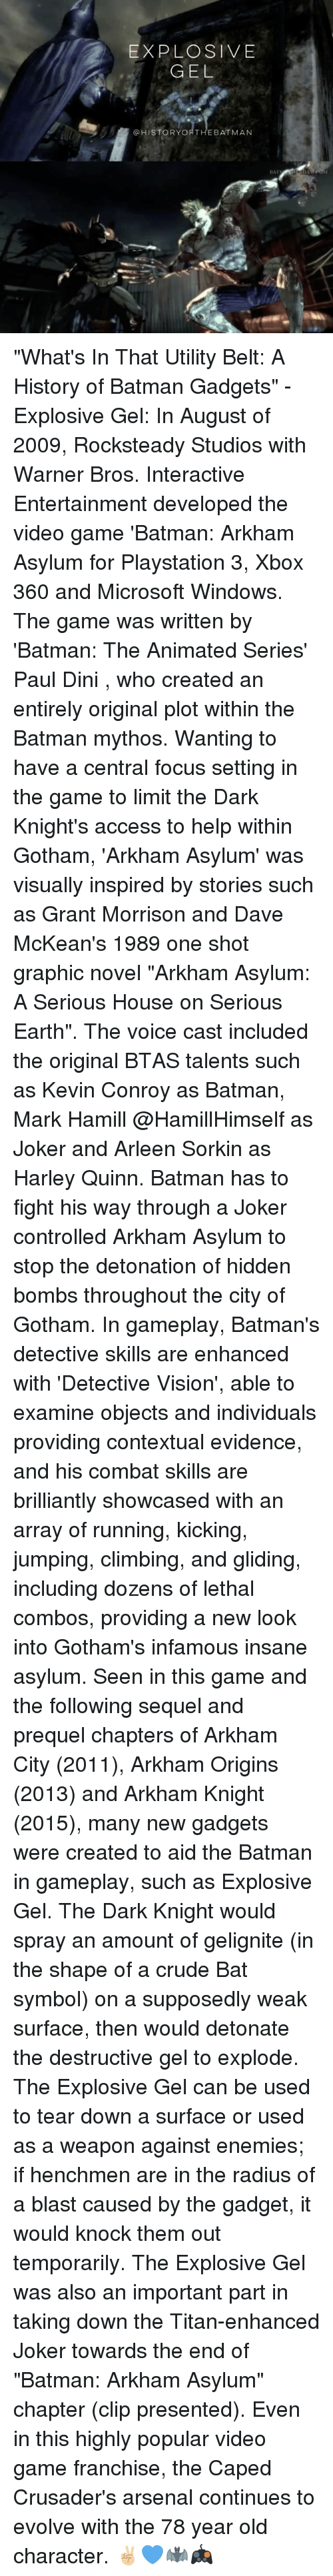 """videos games: EXPLOSIVE  GEL  @HISTORYORTHEBATMAN  RAT """"What's In That Utility Belt: A History of Batman Gadgets"""" - Explosive Gel: In August of 2009, Rocksteady Studios with Warner Bros. Interactive Entertainment developed the video game 'Batman: Arkham Asylum for Playstation 3, Xbox 360 and Microsoft Windows. The game was written by 'Batman: The Animated Series' Paul Dini , who created an entirely original plot within the Batman mythos. Wanting to have a central focus setting in the game to limit the Dark Knight's access to help within Gotham, 'Arkham Asylum' was visually inspired by stories such as Grant Morrison and Dave McKean's 1989 one shot graphic novel """"Arkham Asylum: A Serious House on Serious Earth"""". The voice cast included the original BTAS talents such as Kevin Conroy as Batman, Mark Hamill @HamillHimself as Joker and Arleen Sorkin as Harley Quinn. Batman has to fight his way through a Joker controlled Arkham Asylum to stop the detonation of hidden bombs throughout the city of Gotham. In gameplay, Batman's detective skills are enhanced with 'Detective Vision', able to examine objects and individuals providing contextual evidence, and his combat skills are brilliantly showcased with an array of running, kicking, jumping, climbing, and gliding, including dozens of lethal combos, providing a new look into Gotham's infamous insane asylum. Seen in this game and the following sequel and prequel chapters of Arkham City (2011), Arkham Origins (2013) and Arkham Knight (2015), many new gadgets were created to aid the Batman in gameplay, such as Explosive Gel. The Dark Knight would spray an amount of gelignite (in the shape of a crude Bat symbol) on a supposedly weak surface, then would detonate the destructive gel to explode. The Explosive Gel can be used to tear down a surface or used as a weapon against enemies; if henchmen are in the radius of a blast caused by the gadget, it would knock them out temporarily. The Explosive Gel was also an important part in taki"""